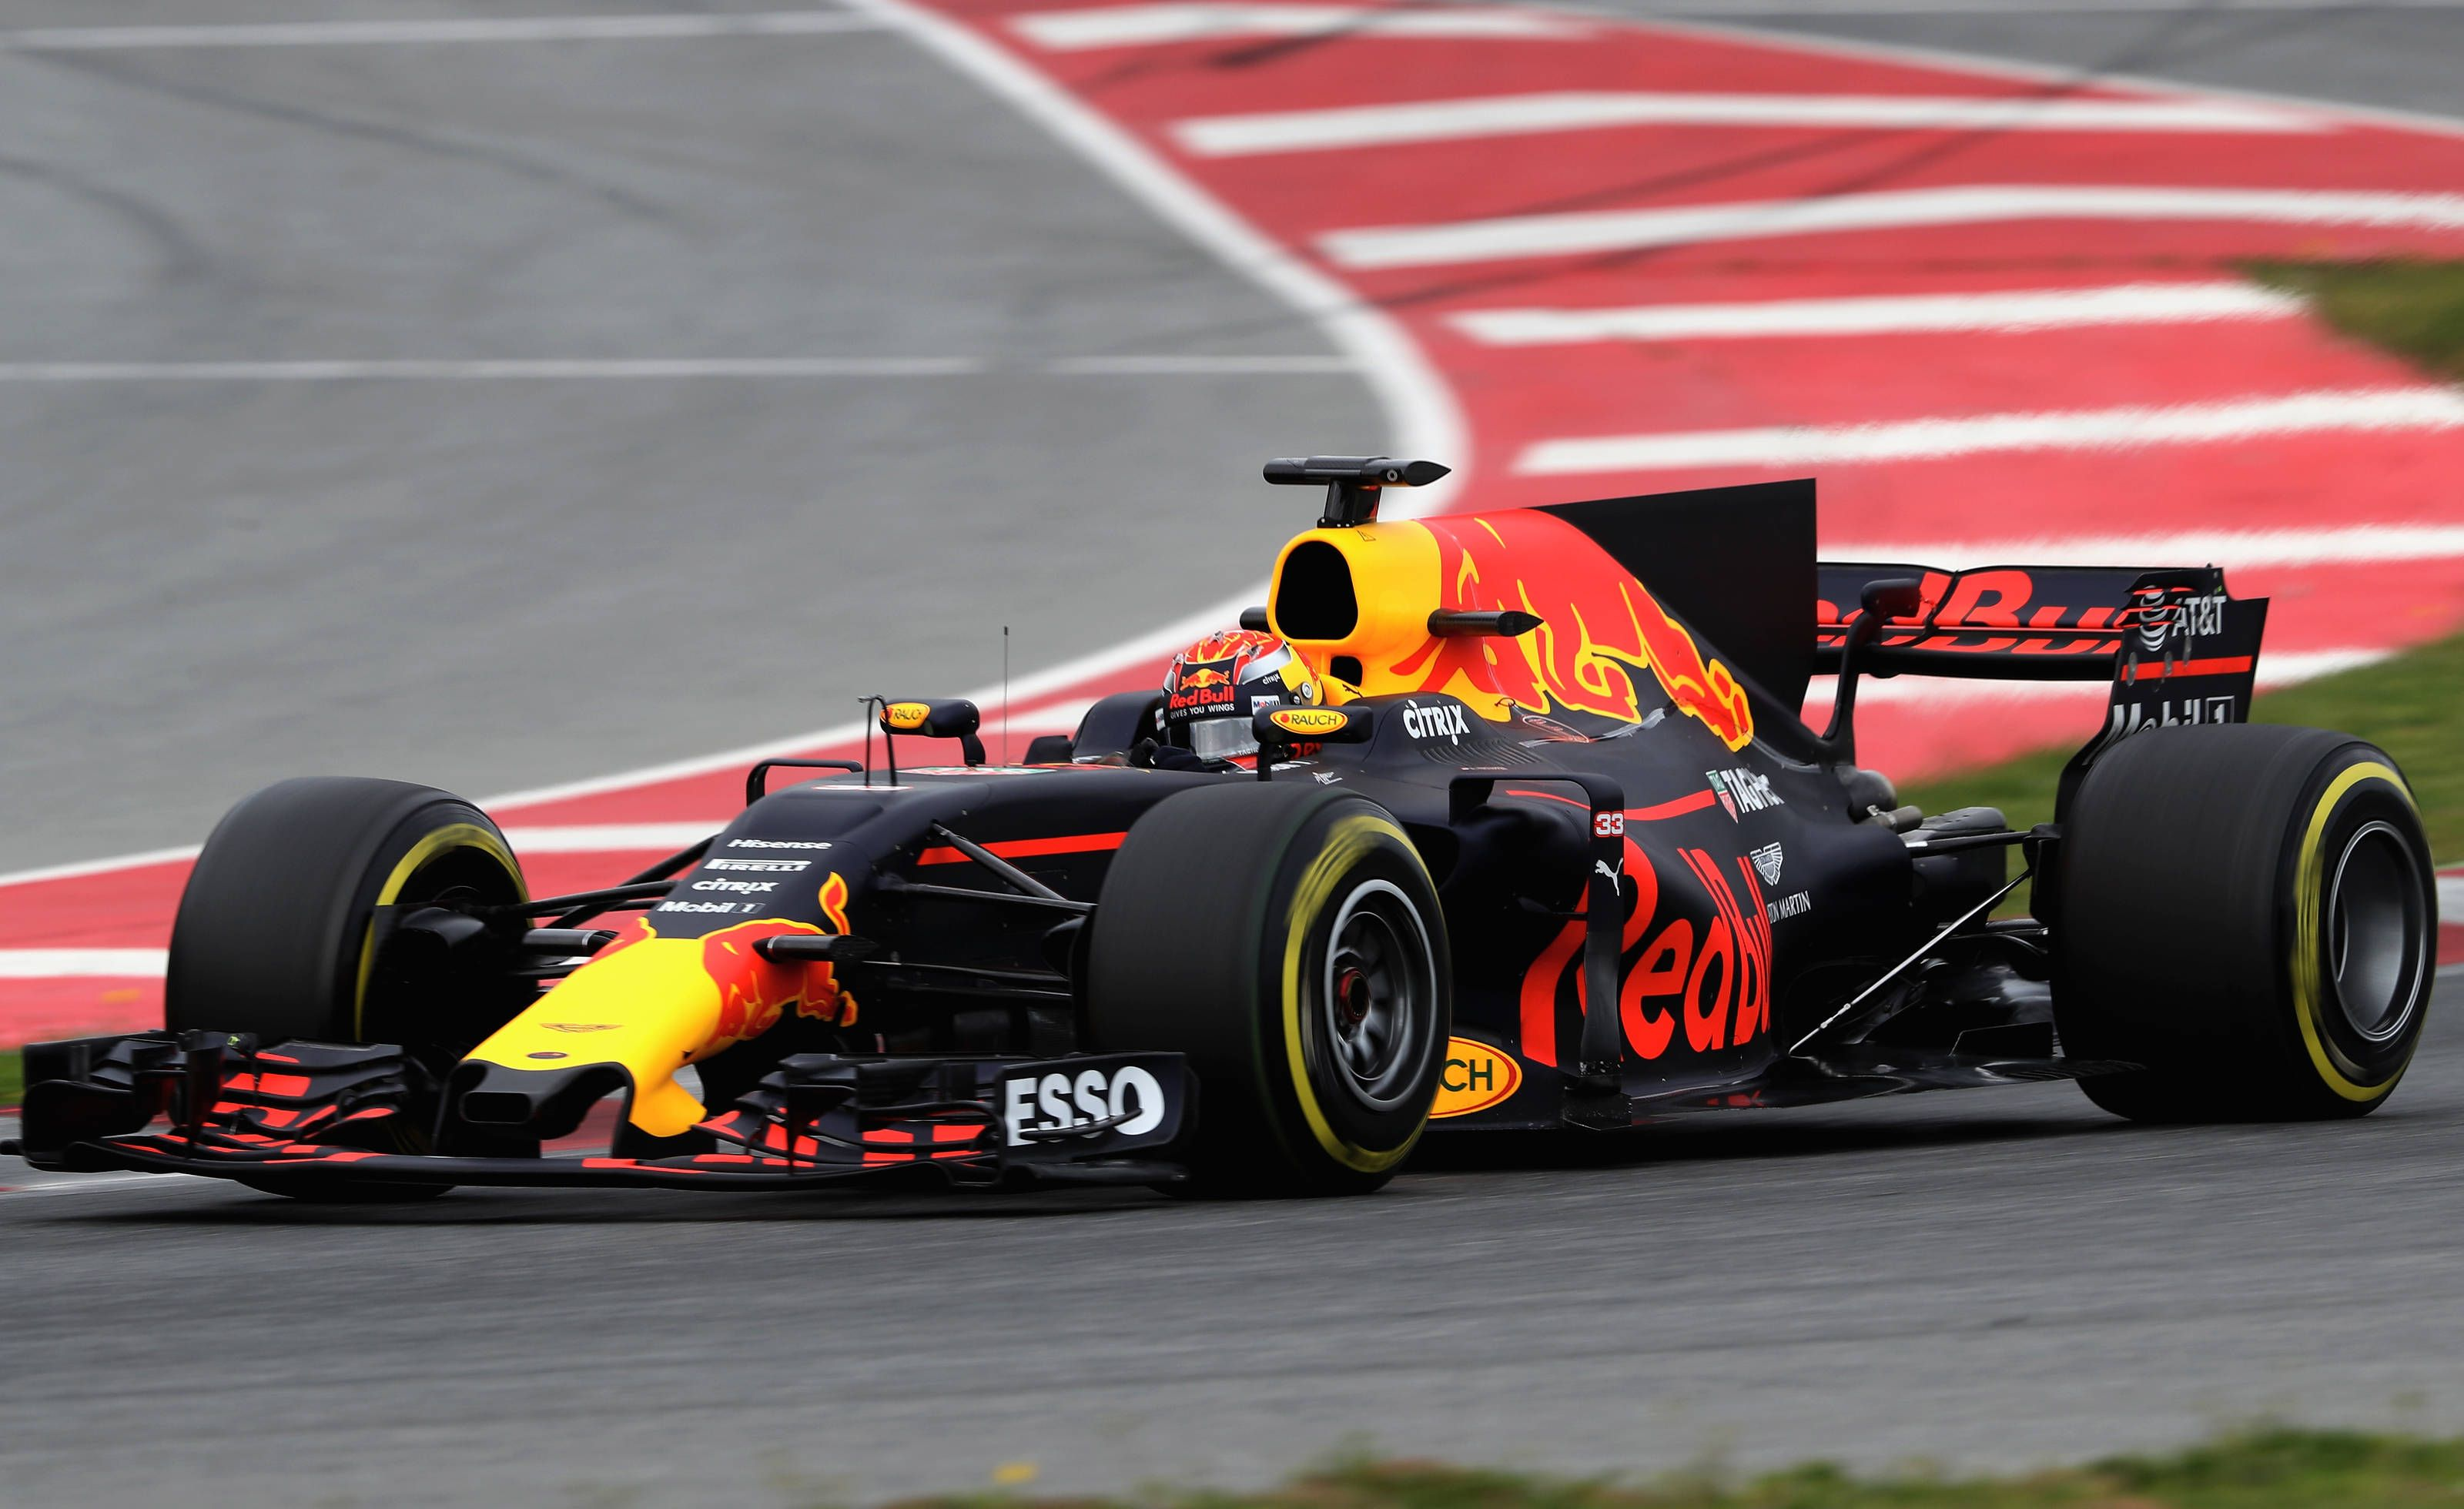 Pin By Patricia Aschman On Just Cool F1 Wec Indy Cars Red Bull Racing Racing